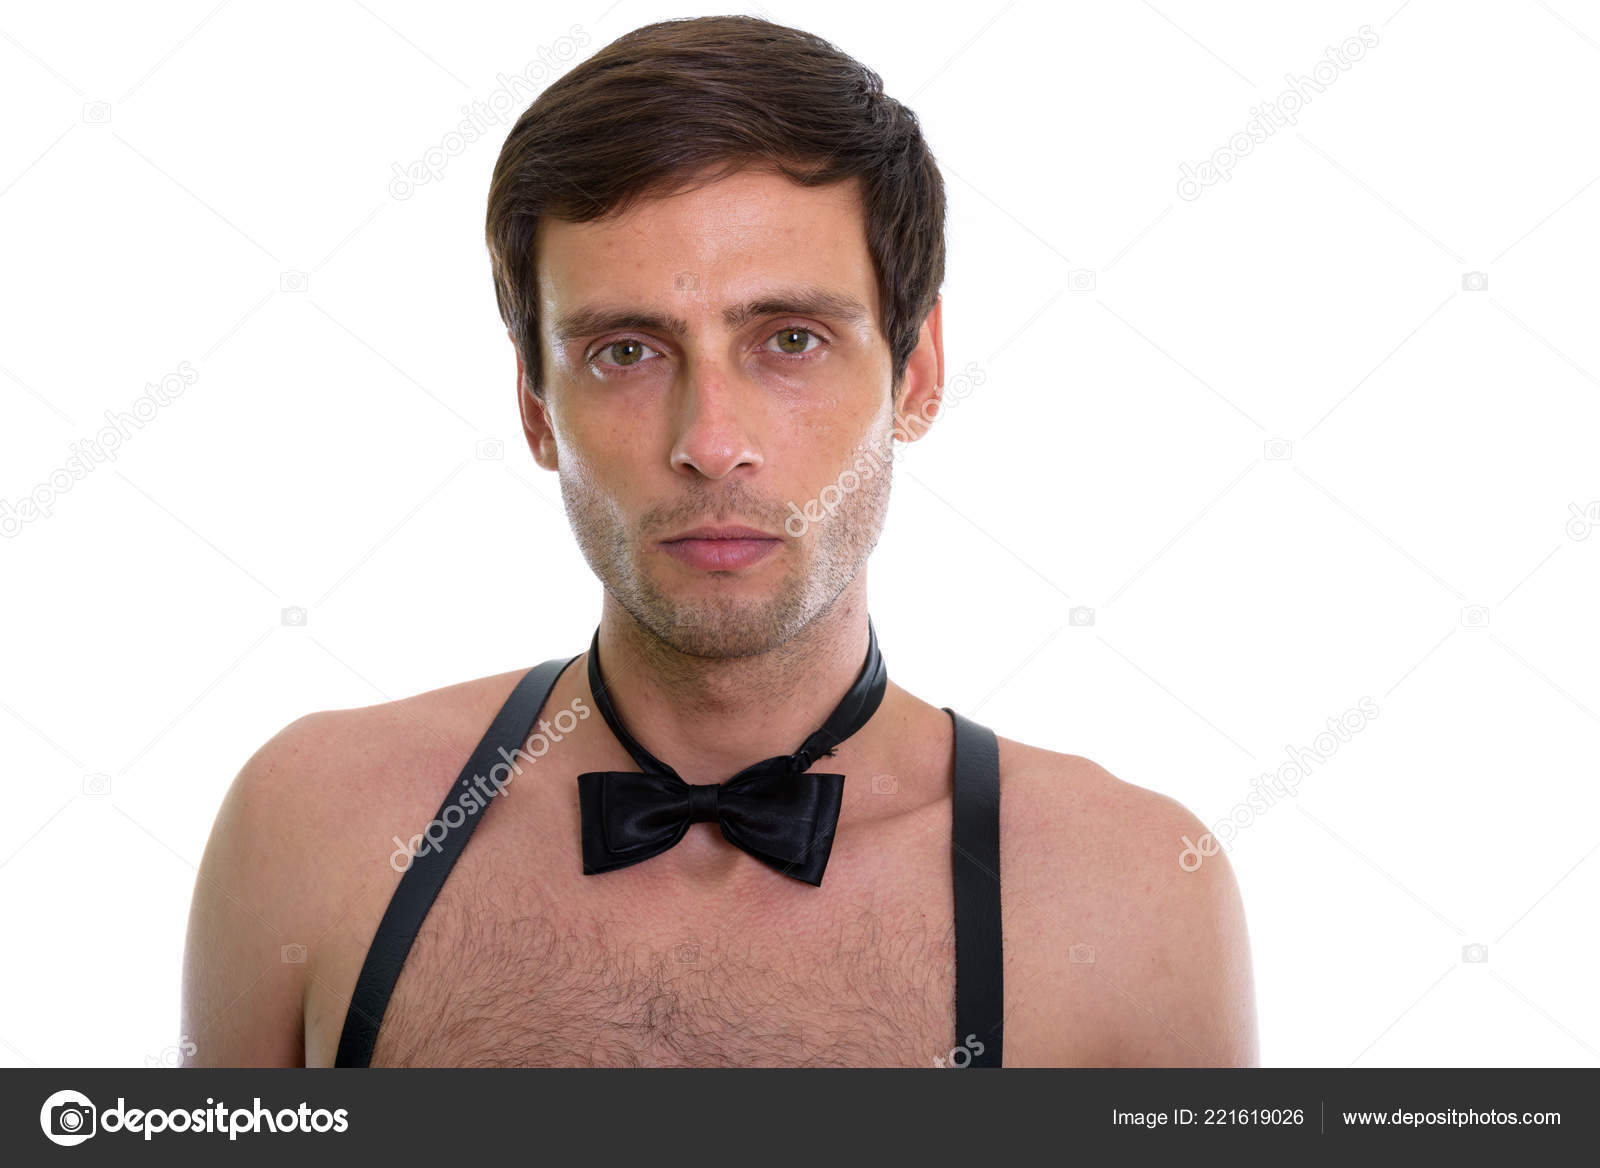 e476b086c5ab Close up of young handsome man wearing suspenders and bow tie sh– stock  image